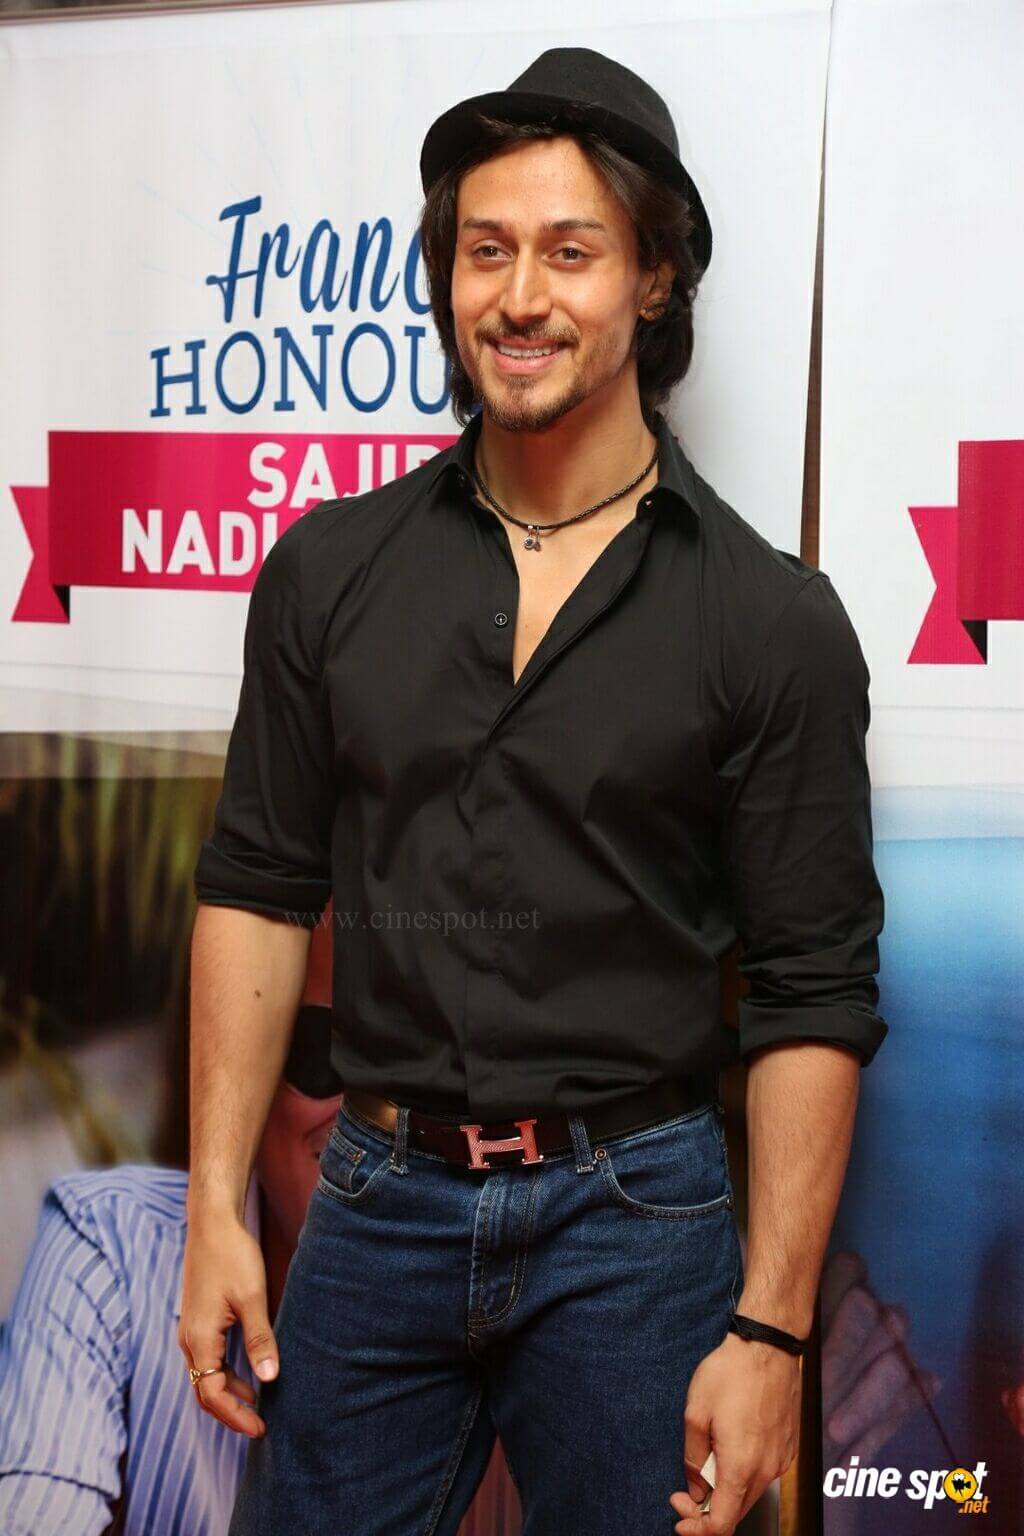 Tiger Shroff Age, Photos(image), Song, Movie, Height, Girlfriend, Sister, Date Of Birth, Net Worth, Biography, Education, Awards, Instagram, Twitter, Facebook, Wiki, Imdb, Youtube (50)